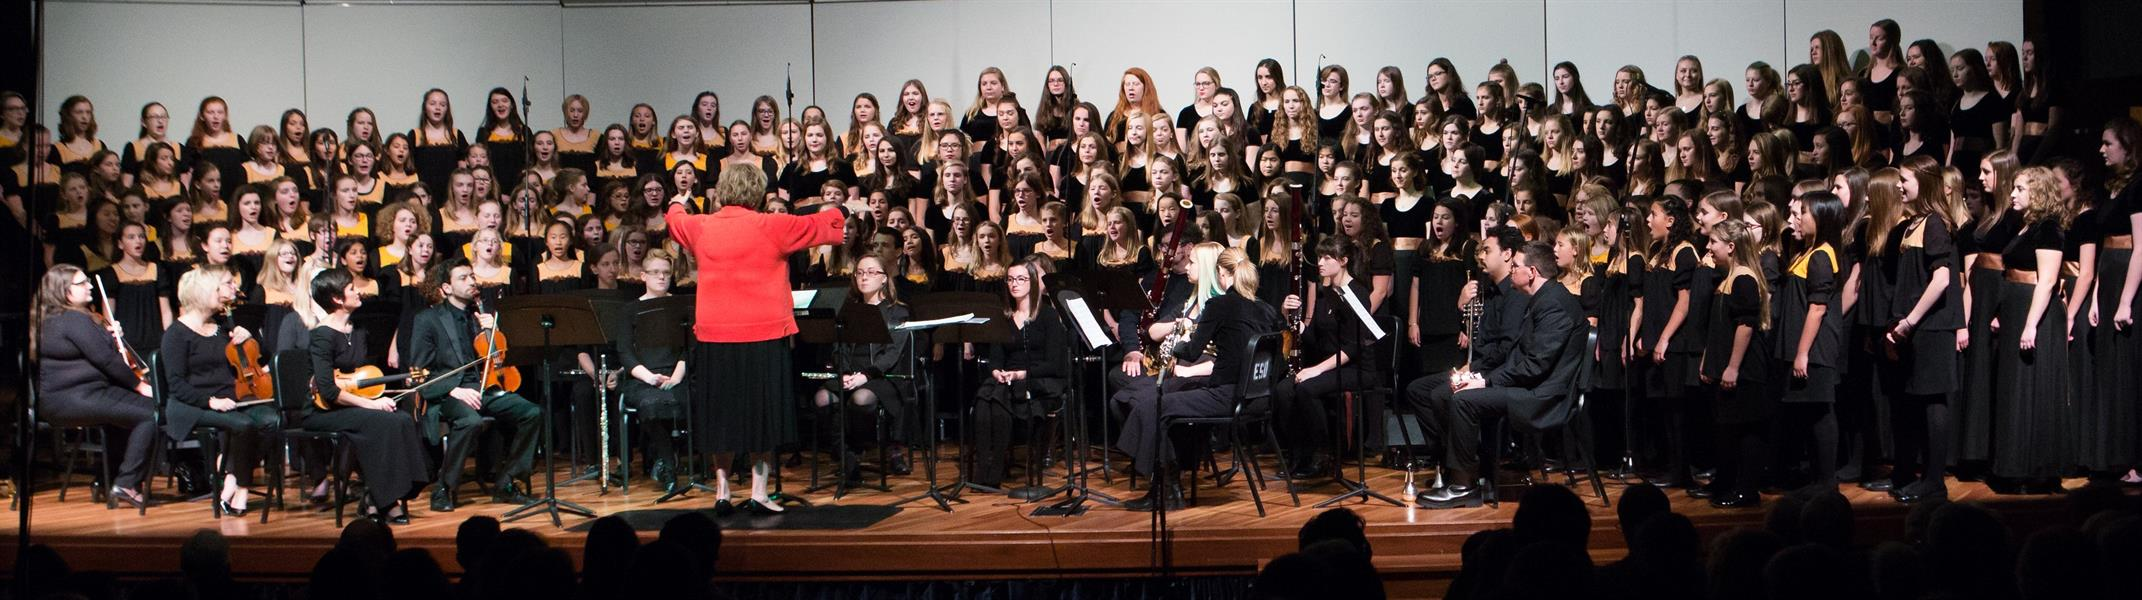 Spirito! Singers Auditions - Jul 31, 2019 to Aug 8, 2019 - Hinsdale